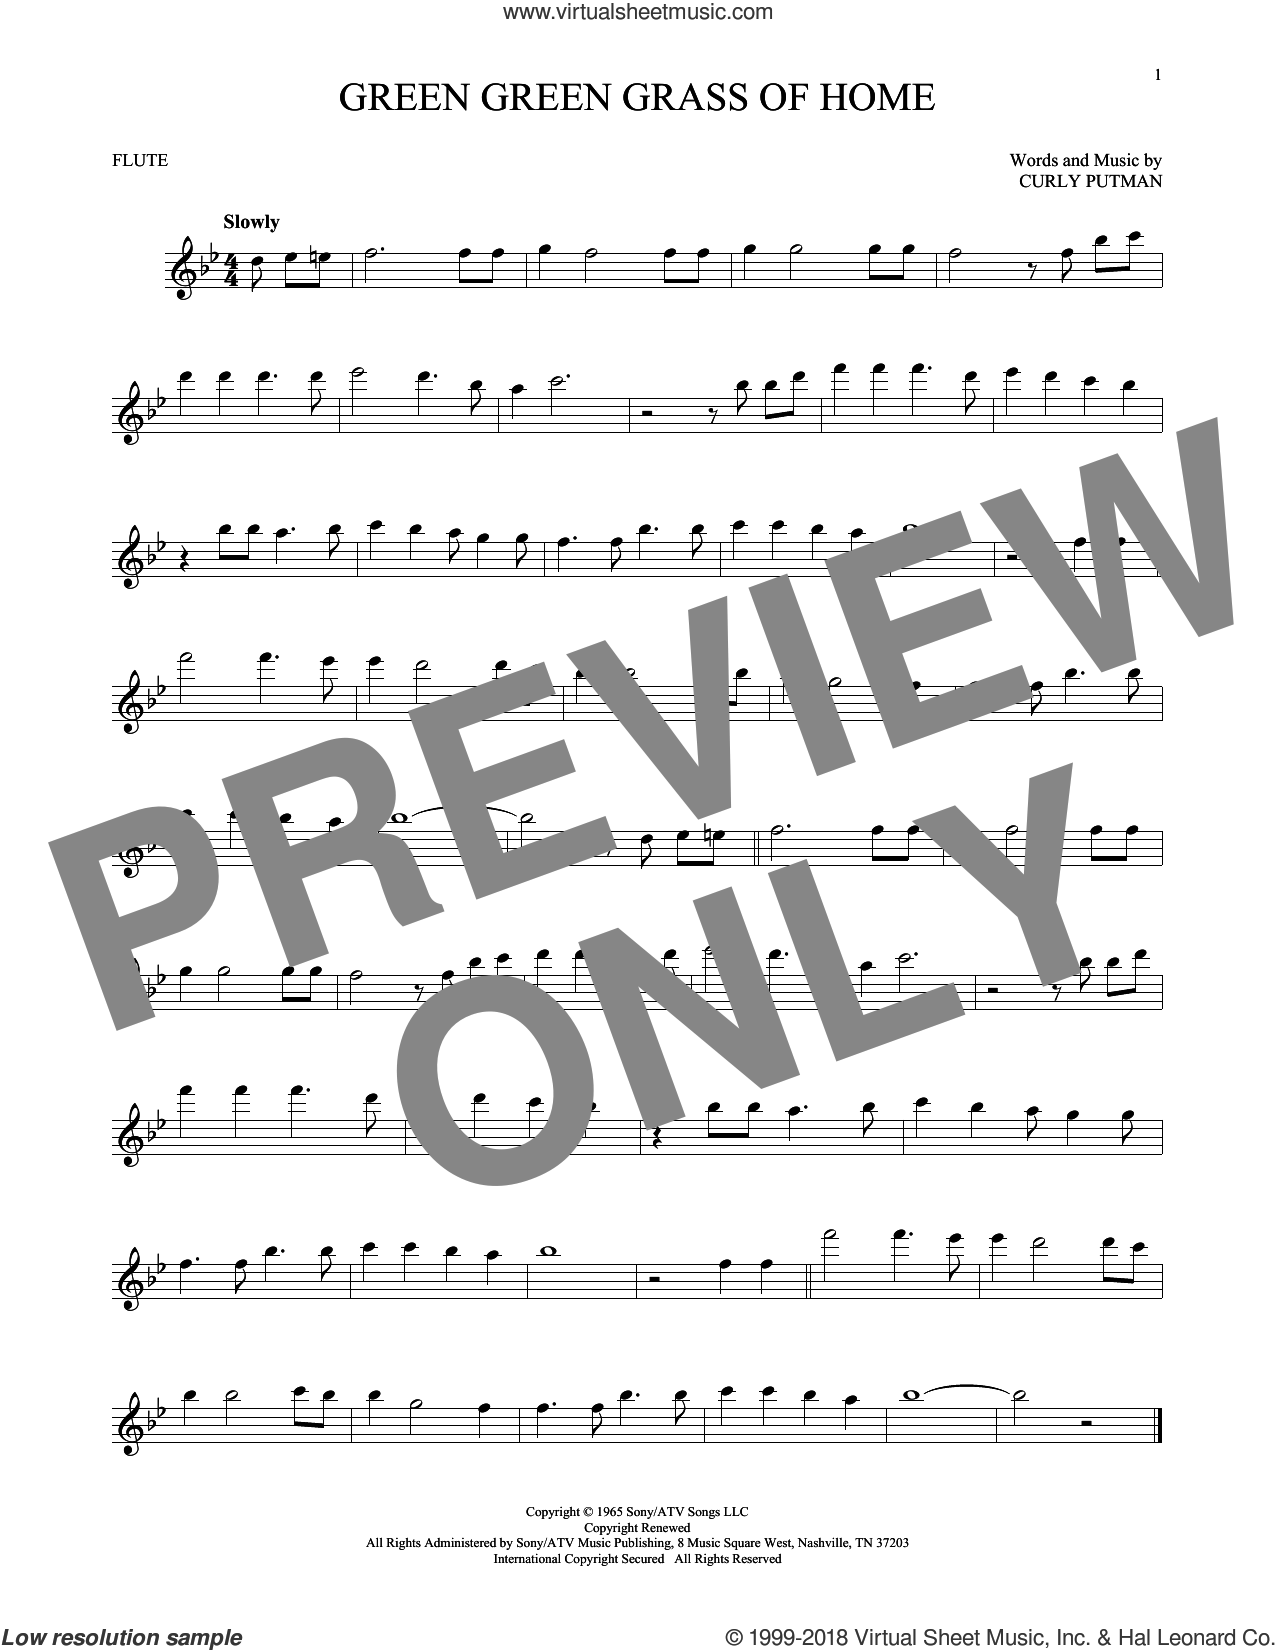 Green Green Grass Of Home sheet music for flute solo by Curly Putman, Elvis Presley, Porter Wagoner and Tom Jones, intermediate skill level